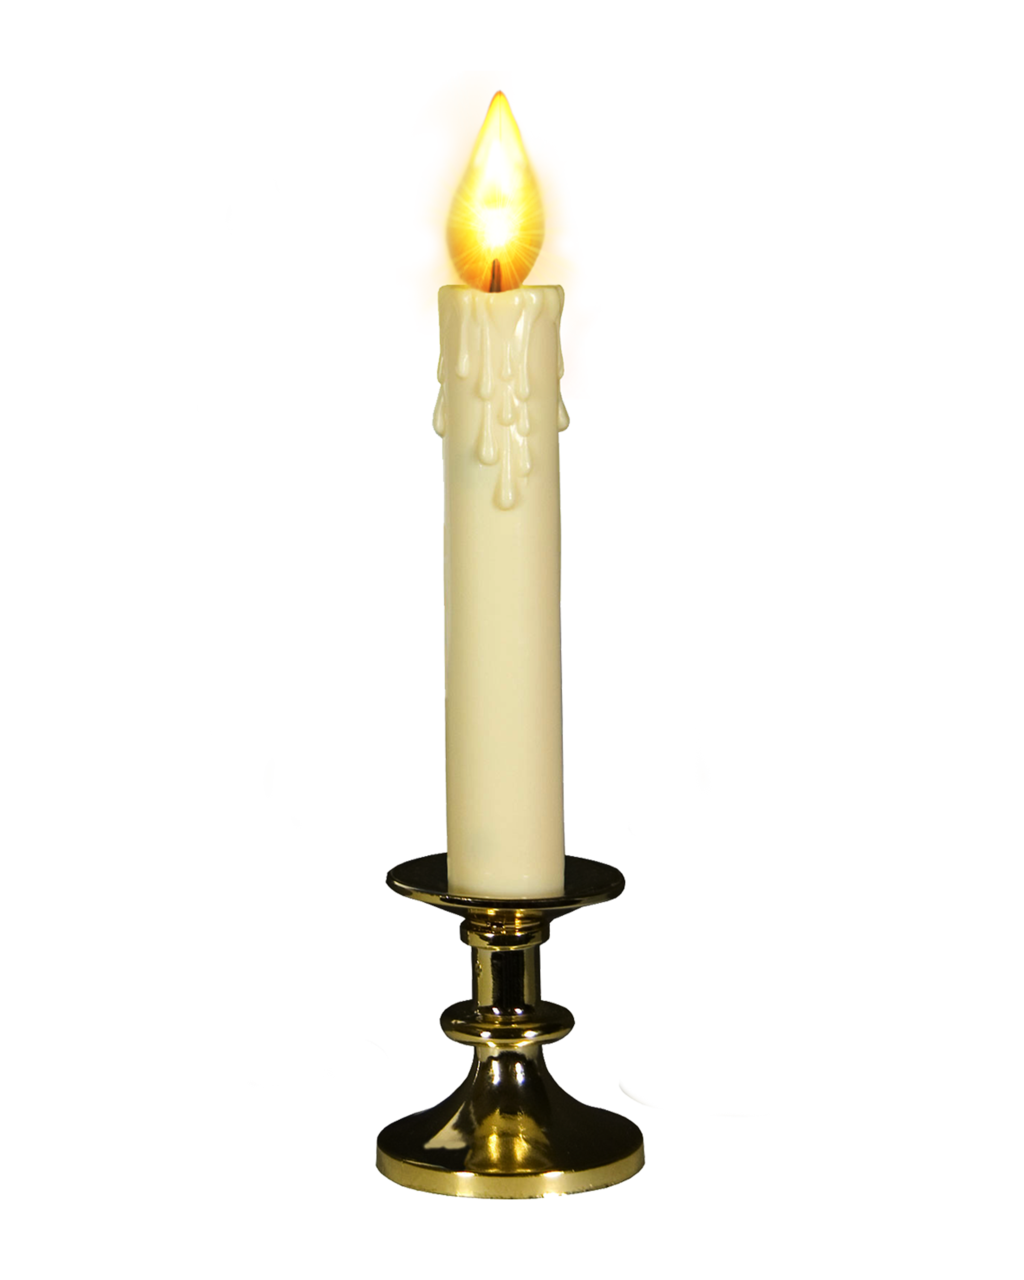 Clipart candle white background. S png image purepng